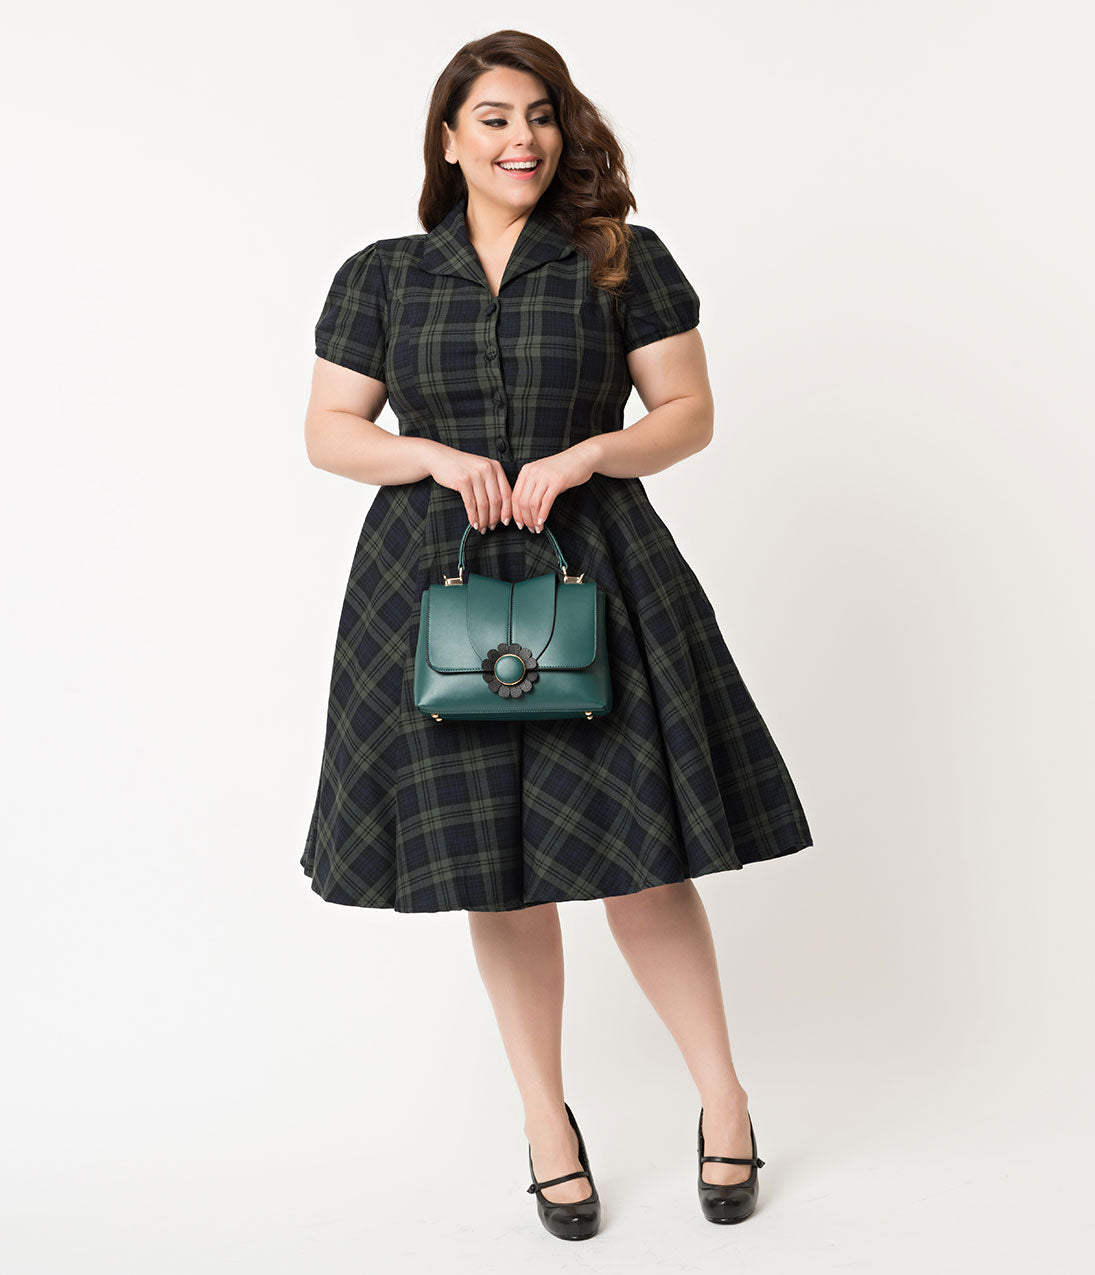 60s 70s Plus Size Dresses, Clothing, Costumes Plus Size 1950S Style Navy  Emerald Tartan Short Sleeve Mona Swing Dress $78.00 AT vintagedancer.com